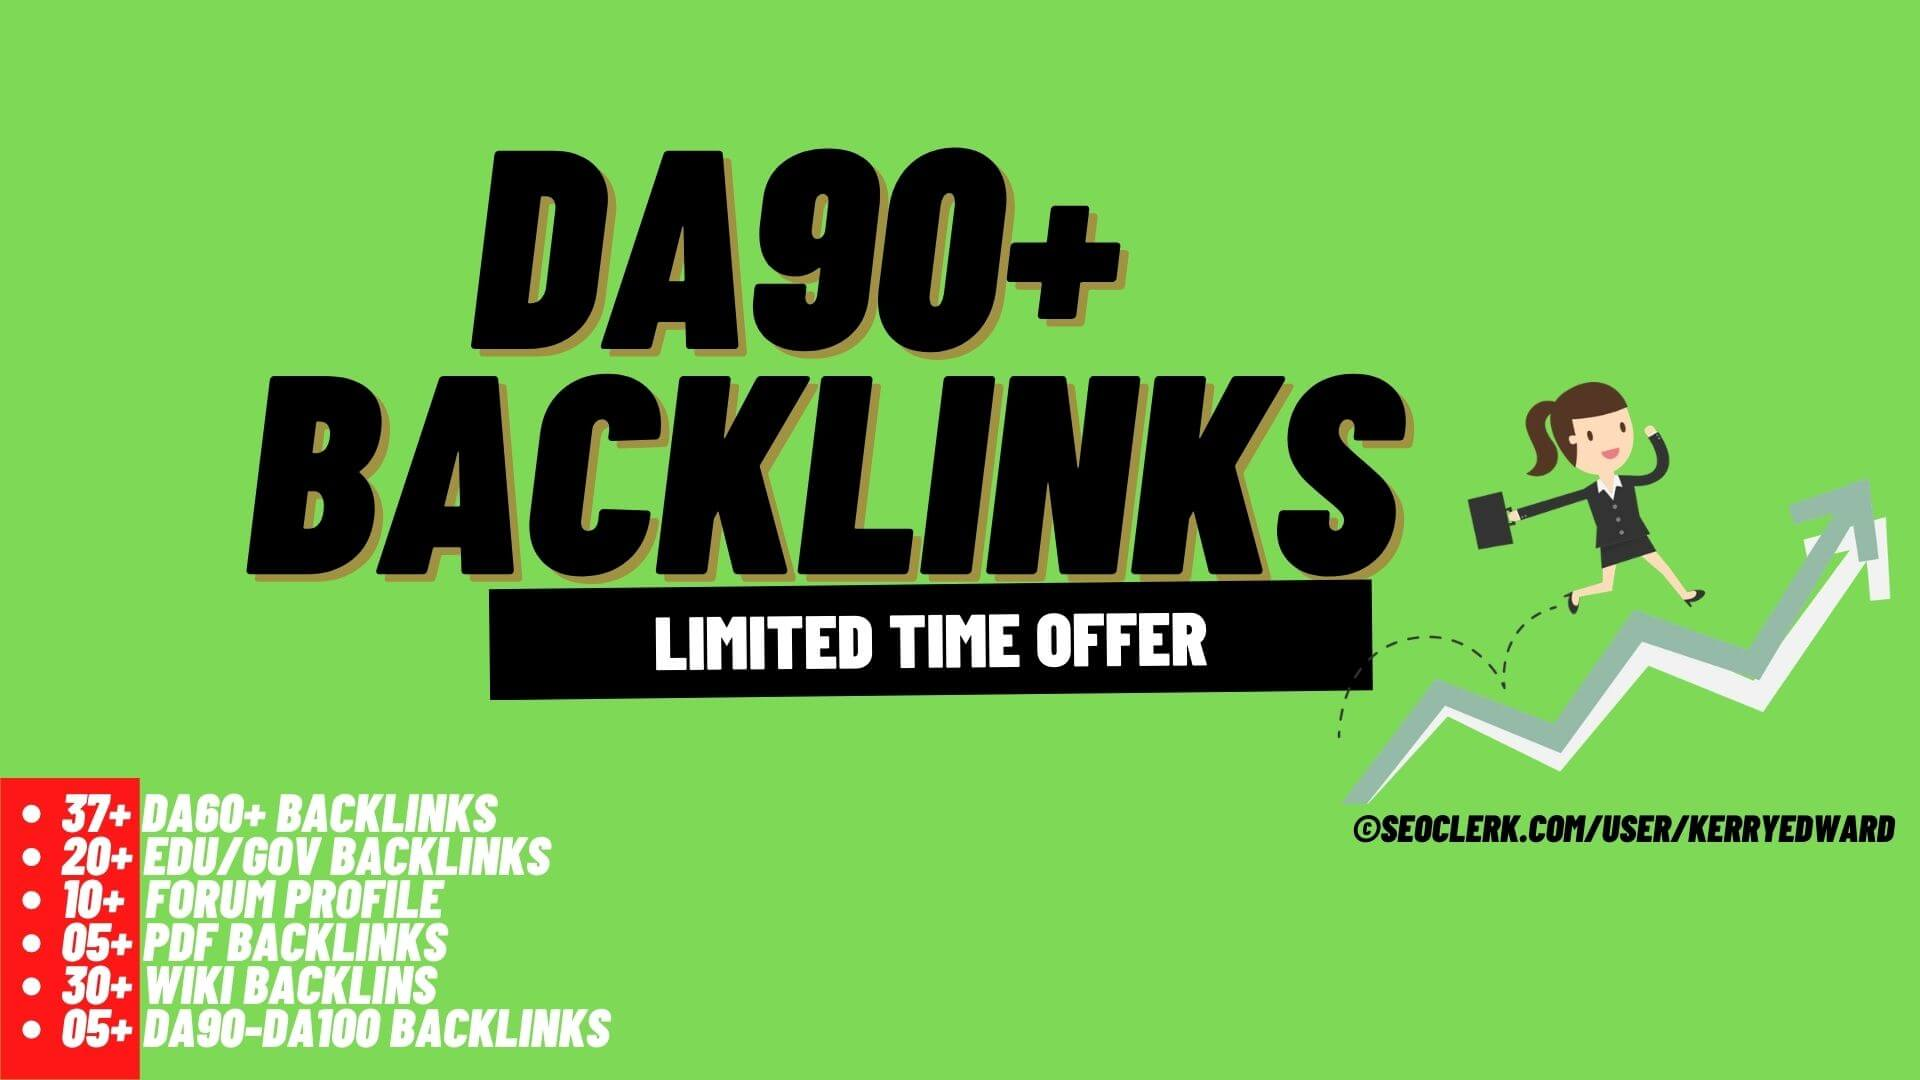 DA90+ Backlinks - 20 Edu/Gov,  30 Wiki,  10 Forum,  05 PDF,  37 DA60+,  and 05 from DA90+